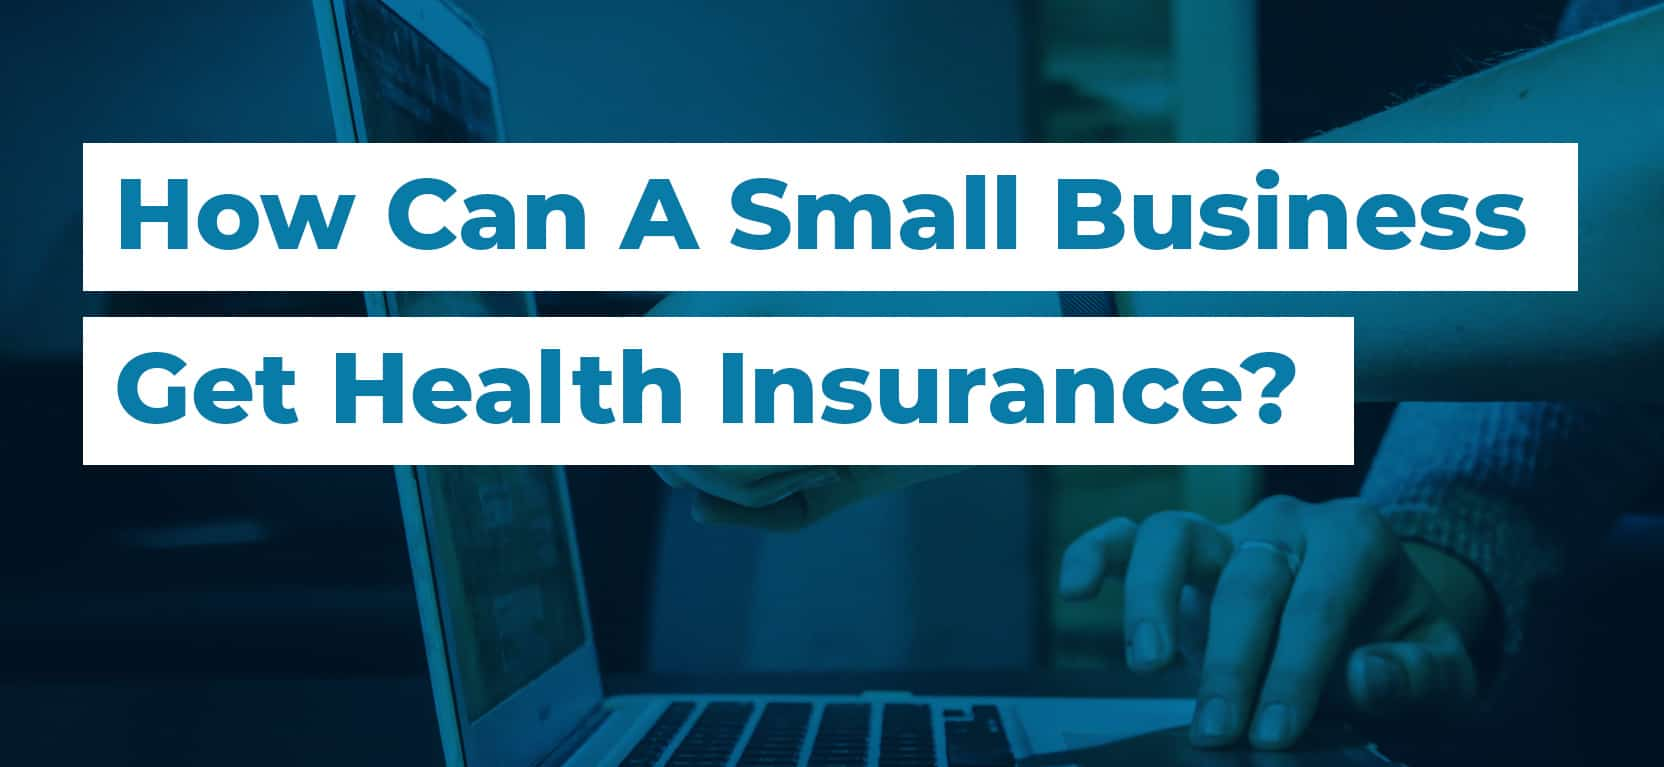 52 How Can A Small Business Get Health Insurance2